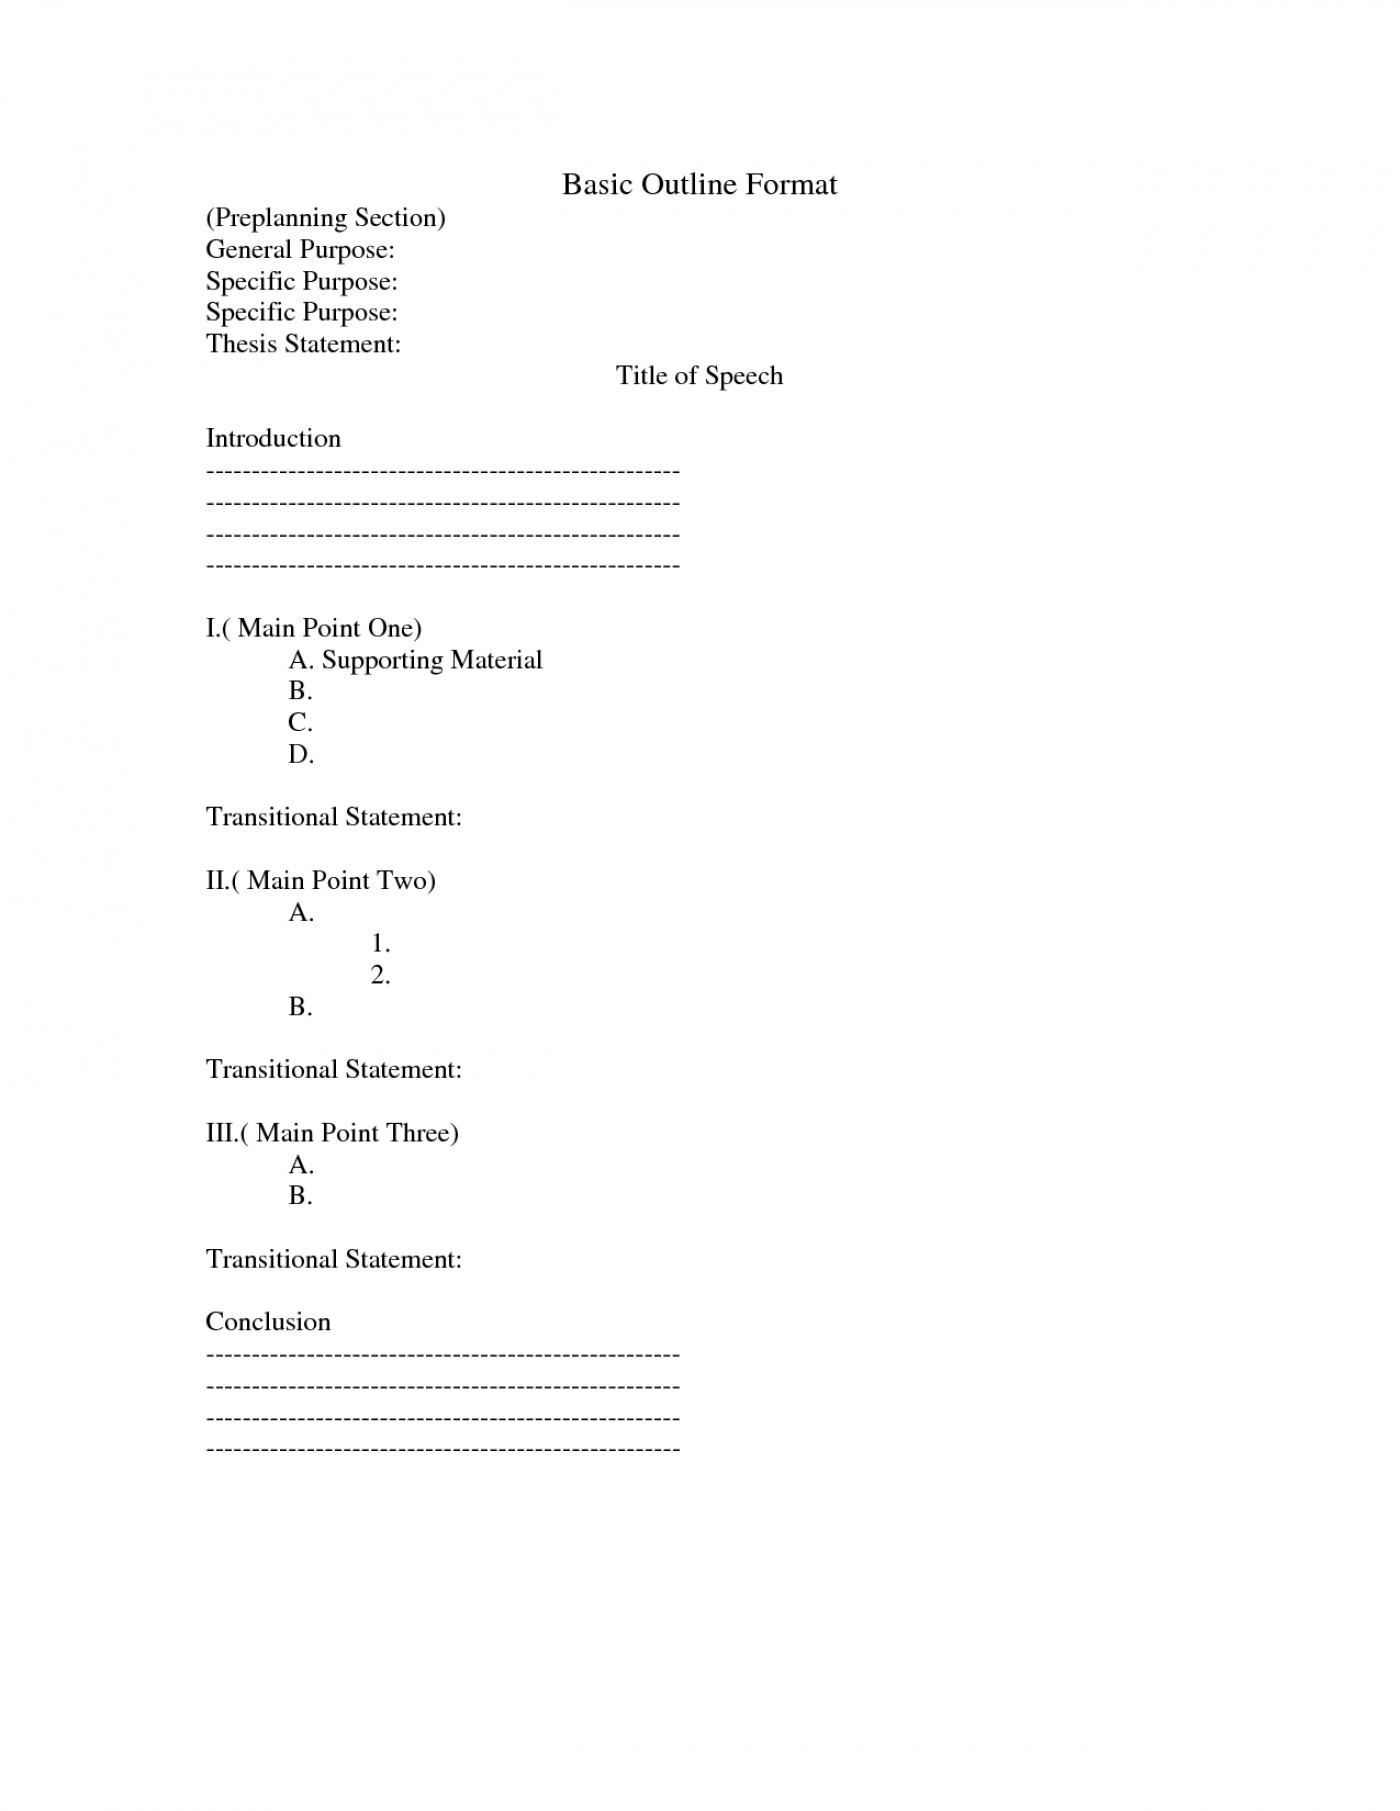 002 Essay Paragraph Structure Basic Format Worksheet Good